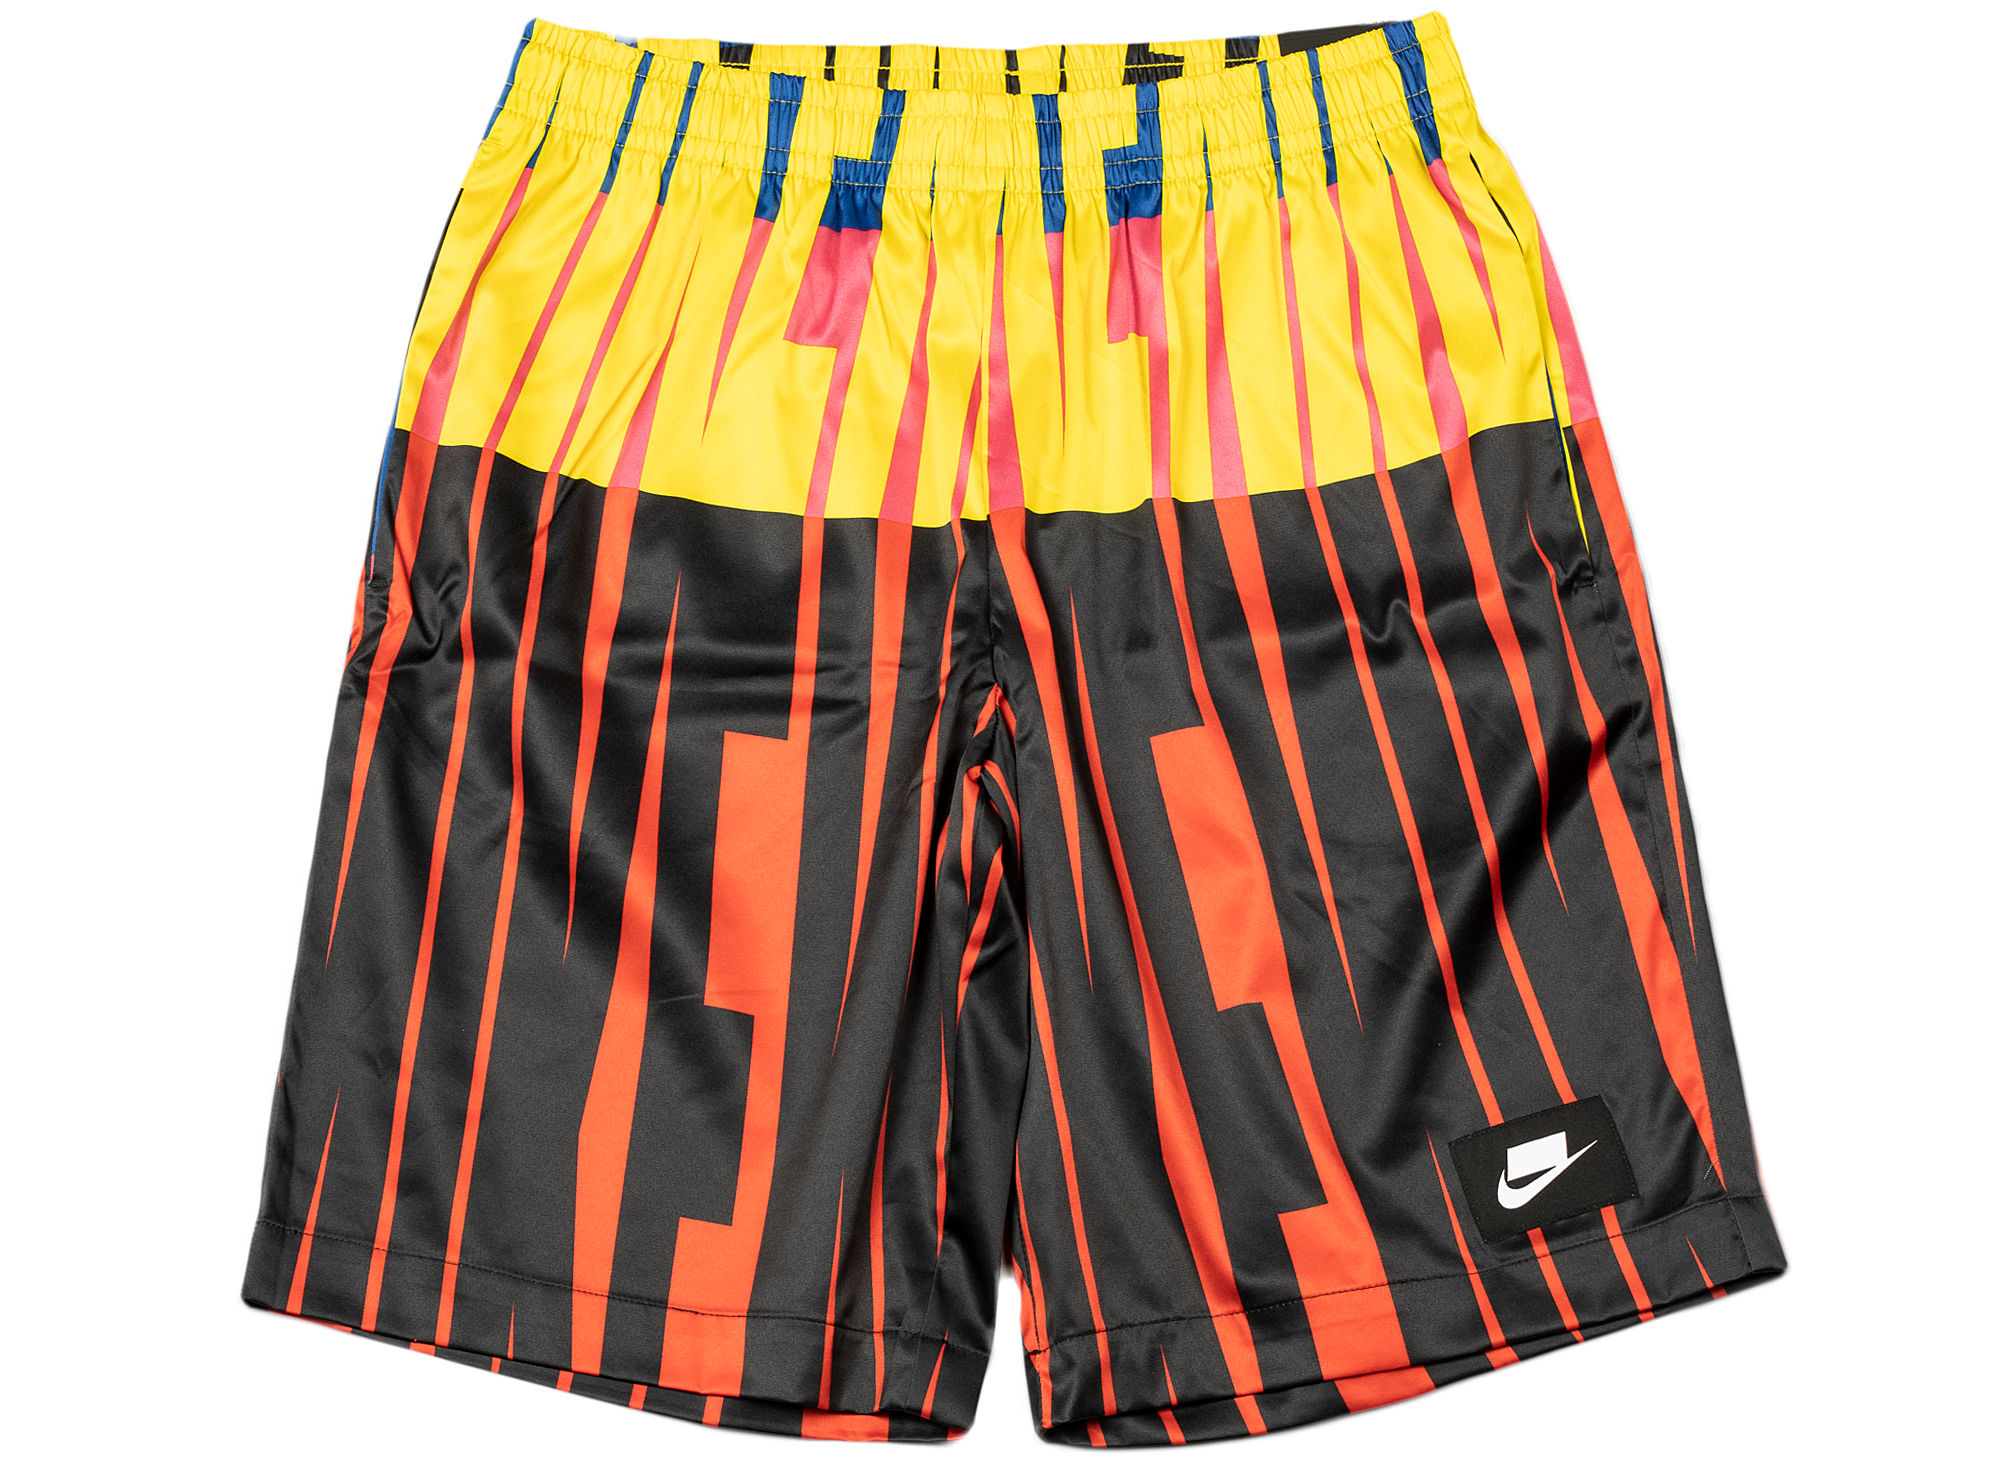 Women's Nike Sportswear NSW Shorts